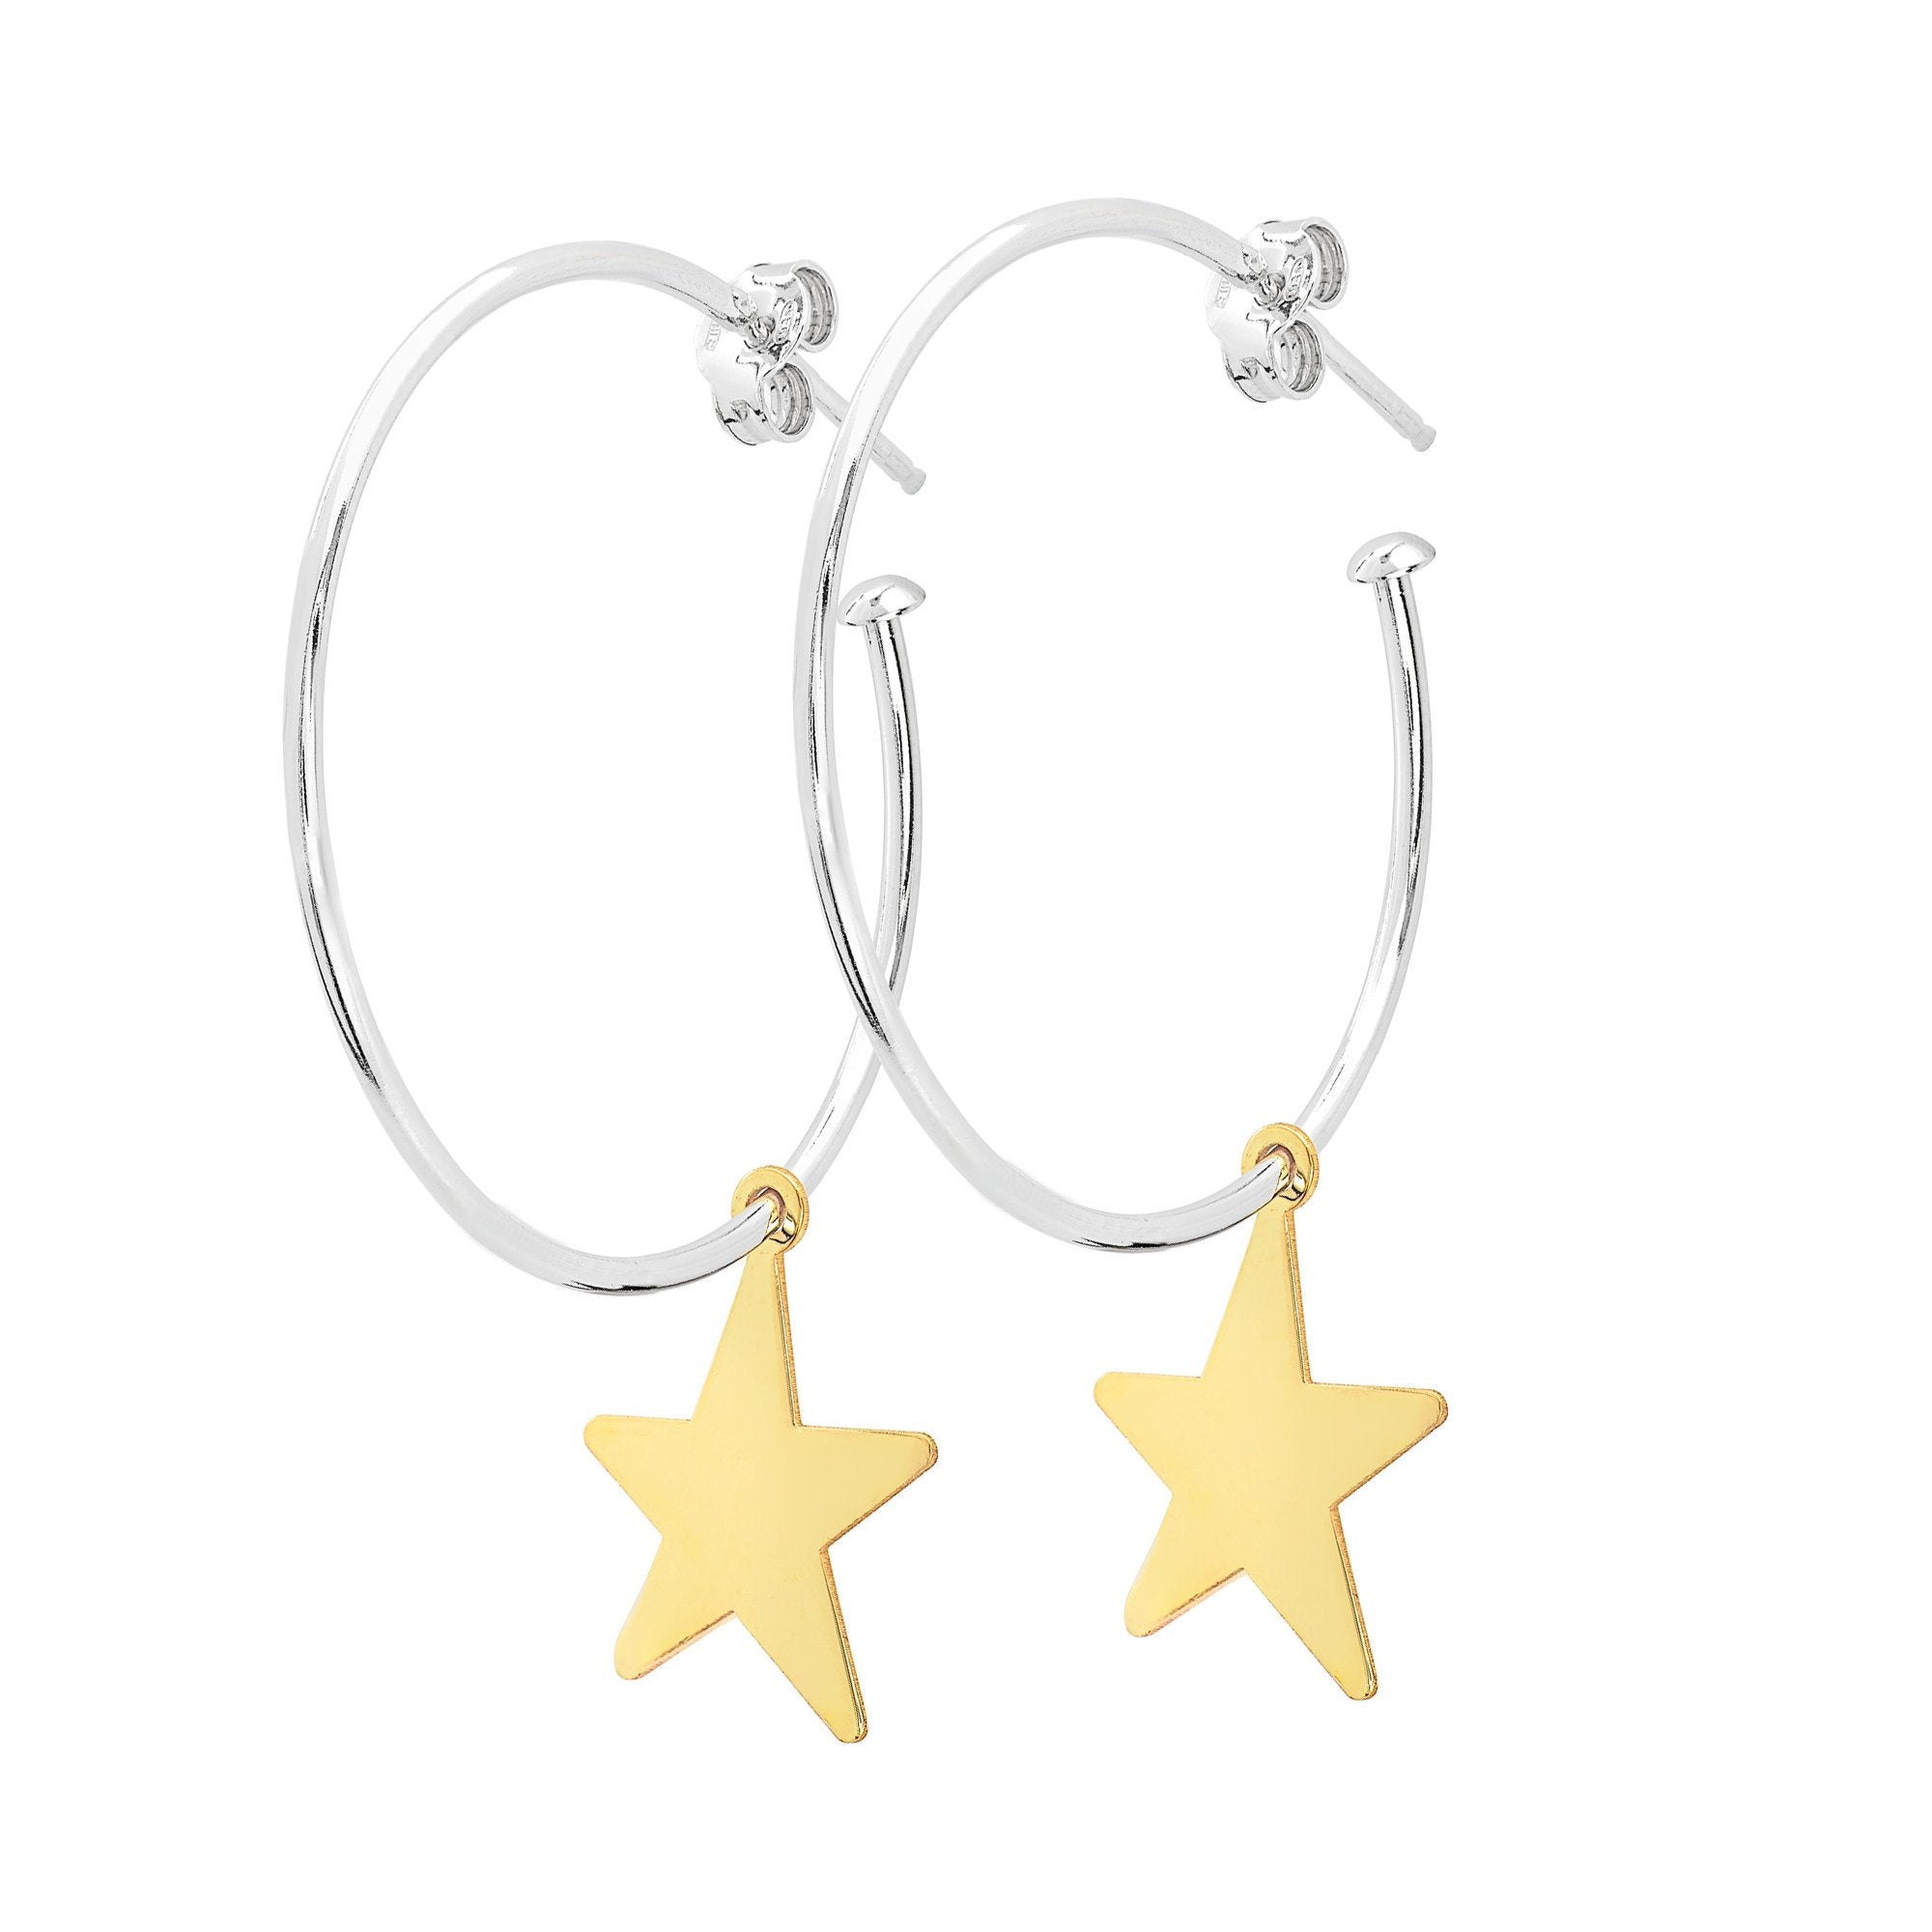 La STELLA CHARM - Gold Stars - The Hoop Station 925 Sterling Silver Hoop Earrings Gold Huggies